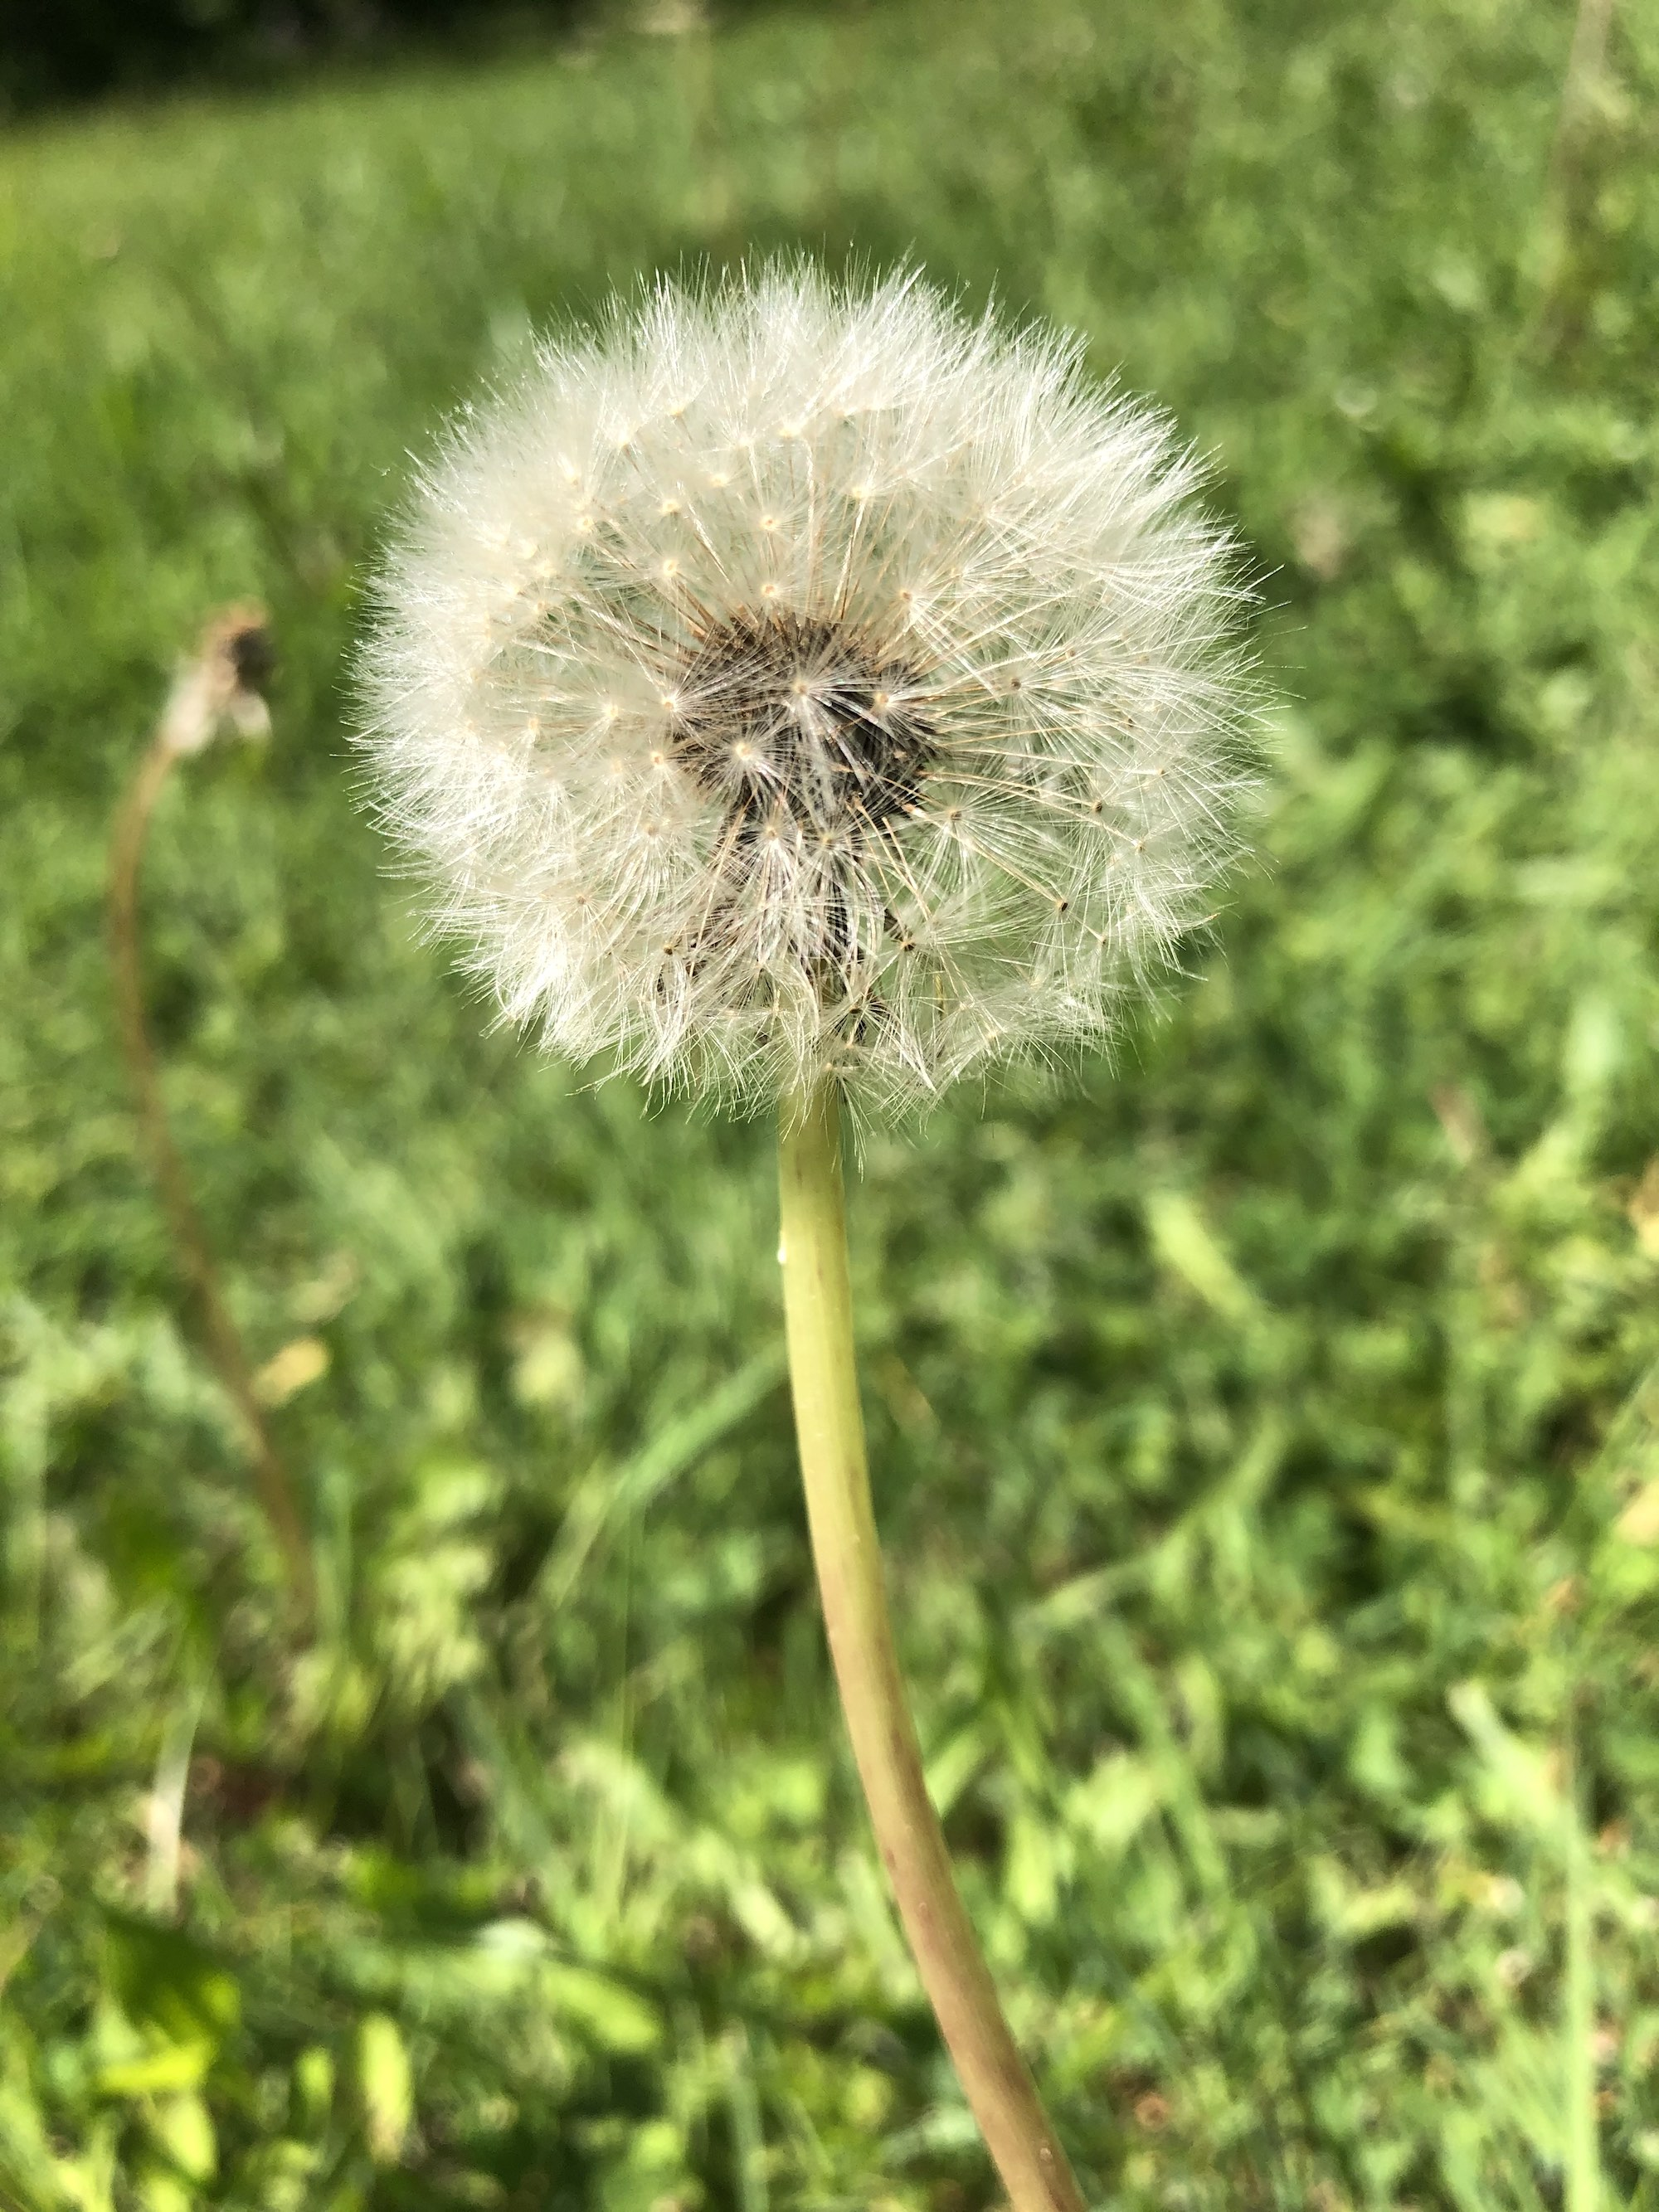 Dandelion puffball in Nakoma Park in Madison Wisconsin on May 31, 2020.